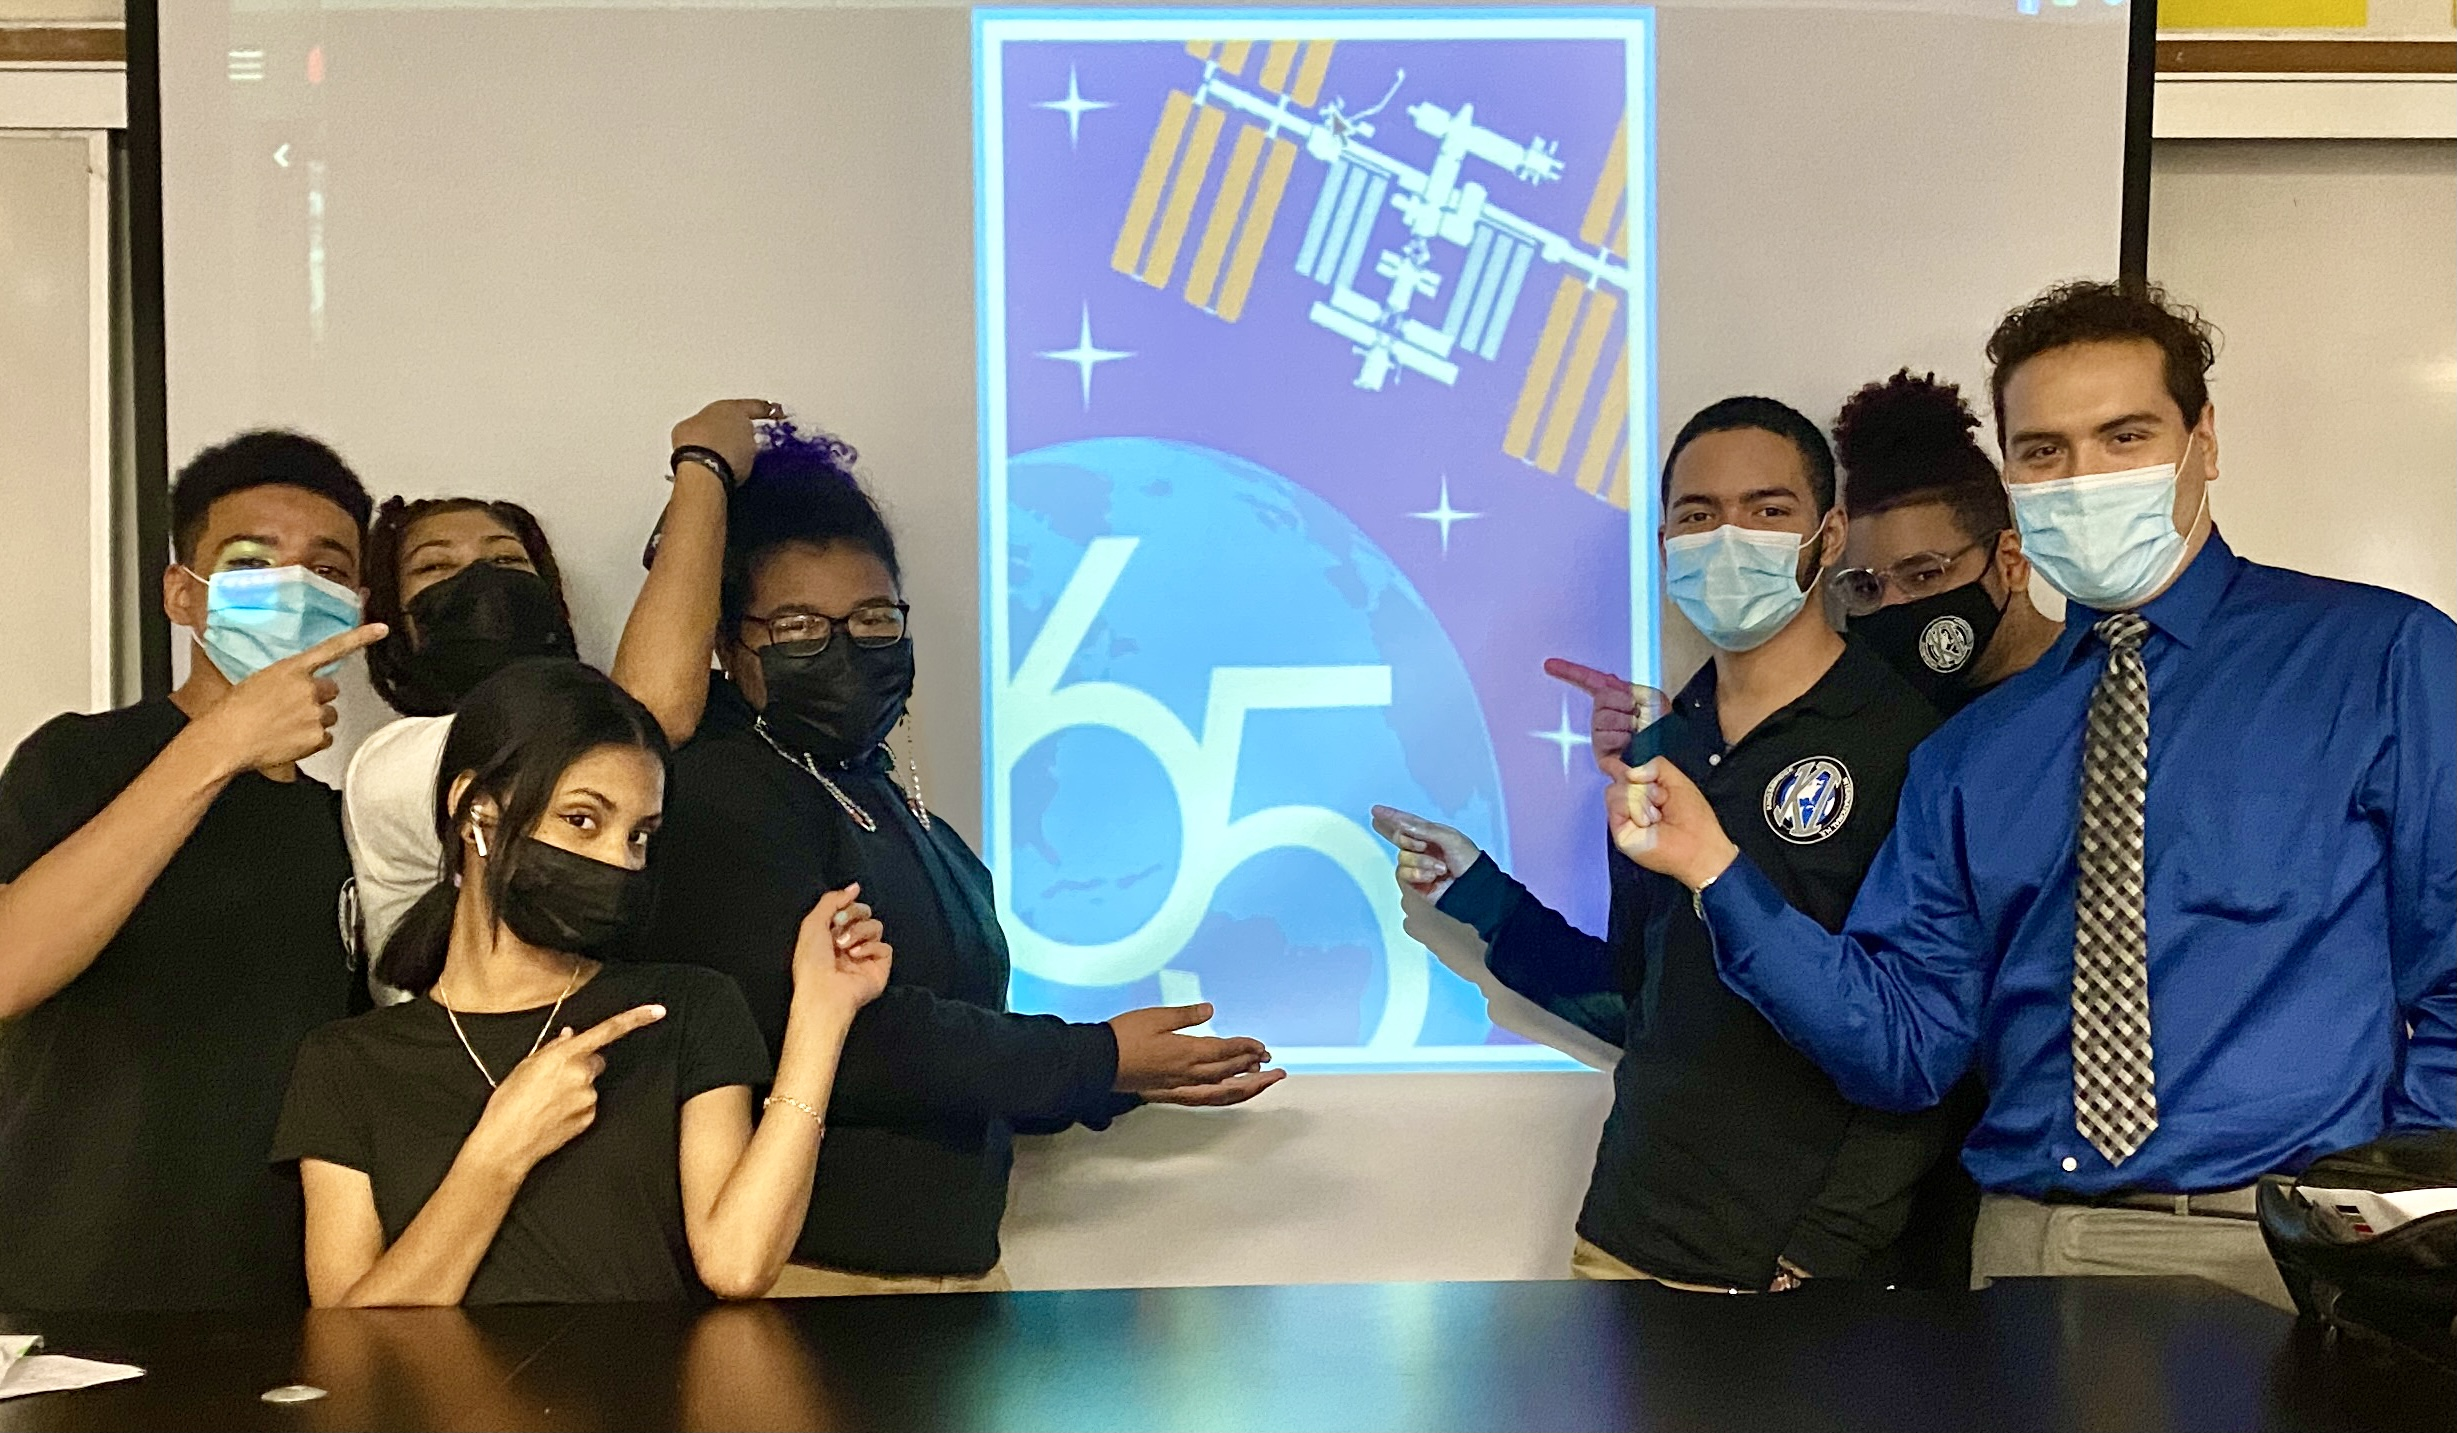 New York & New Jersey Students Interact With NASA Astronauts From The International Space Station